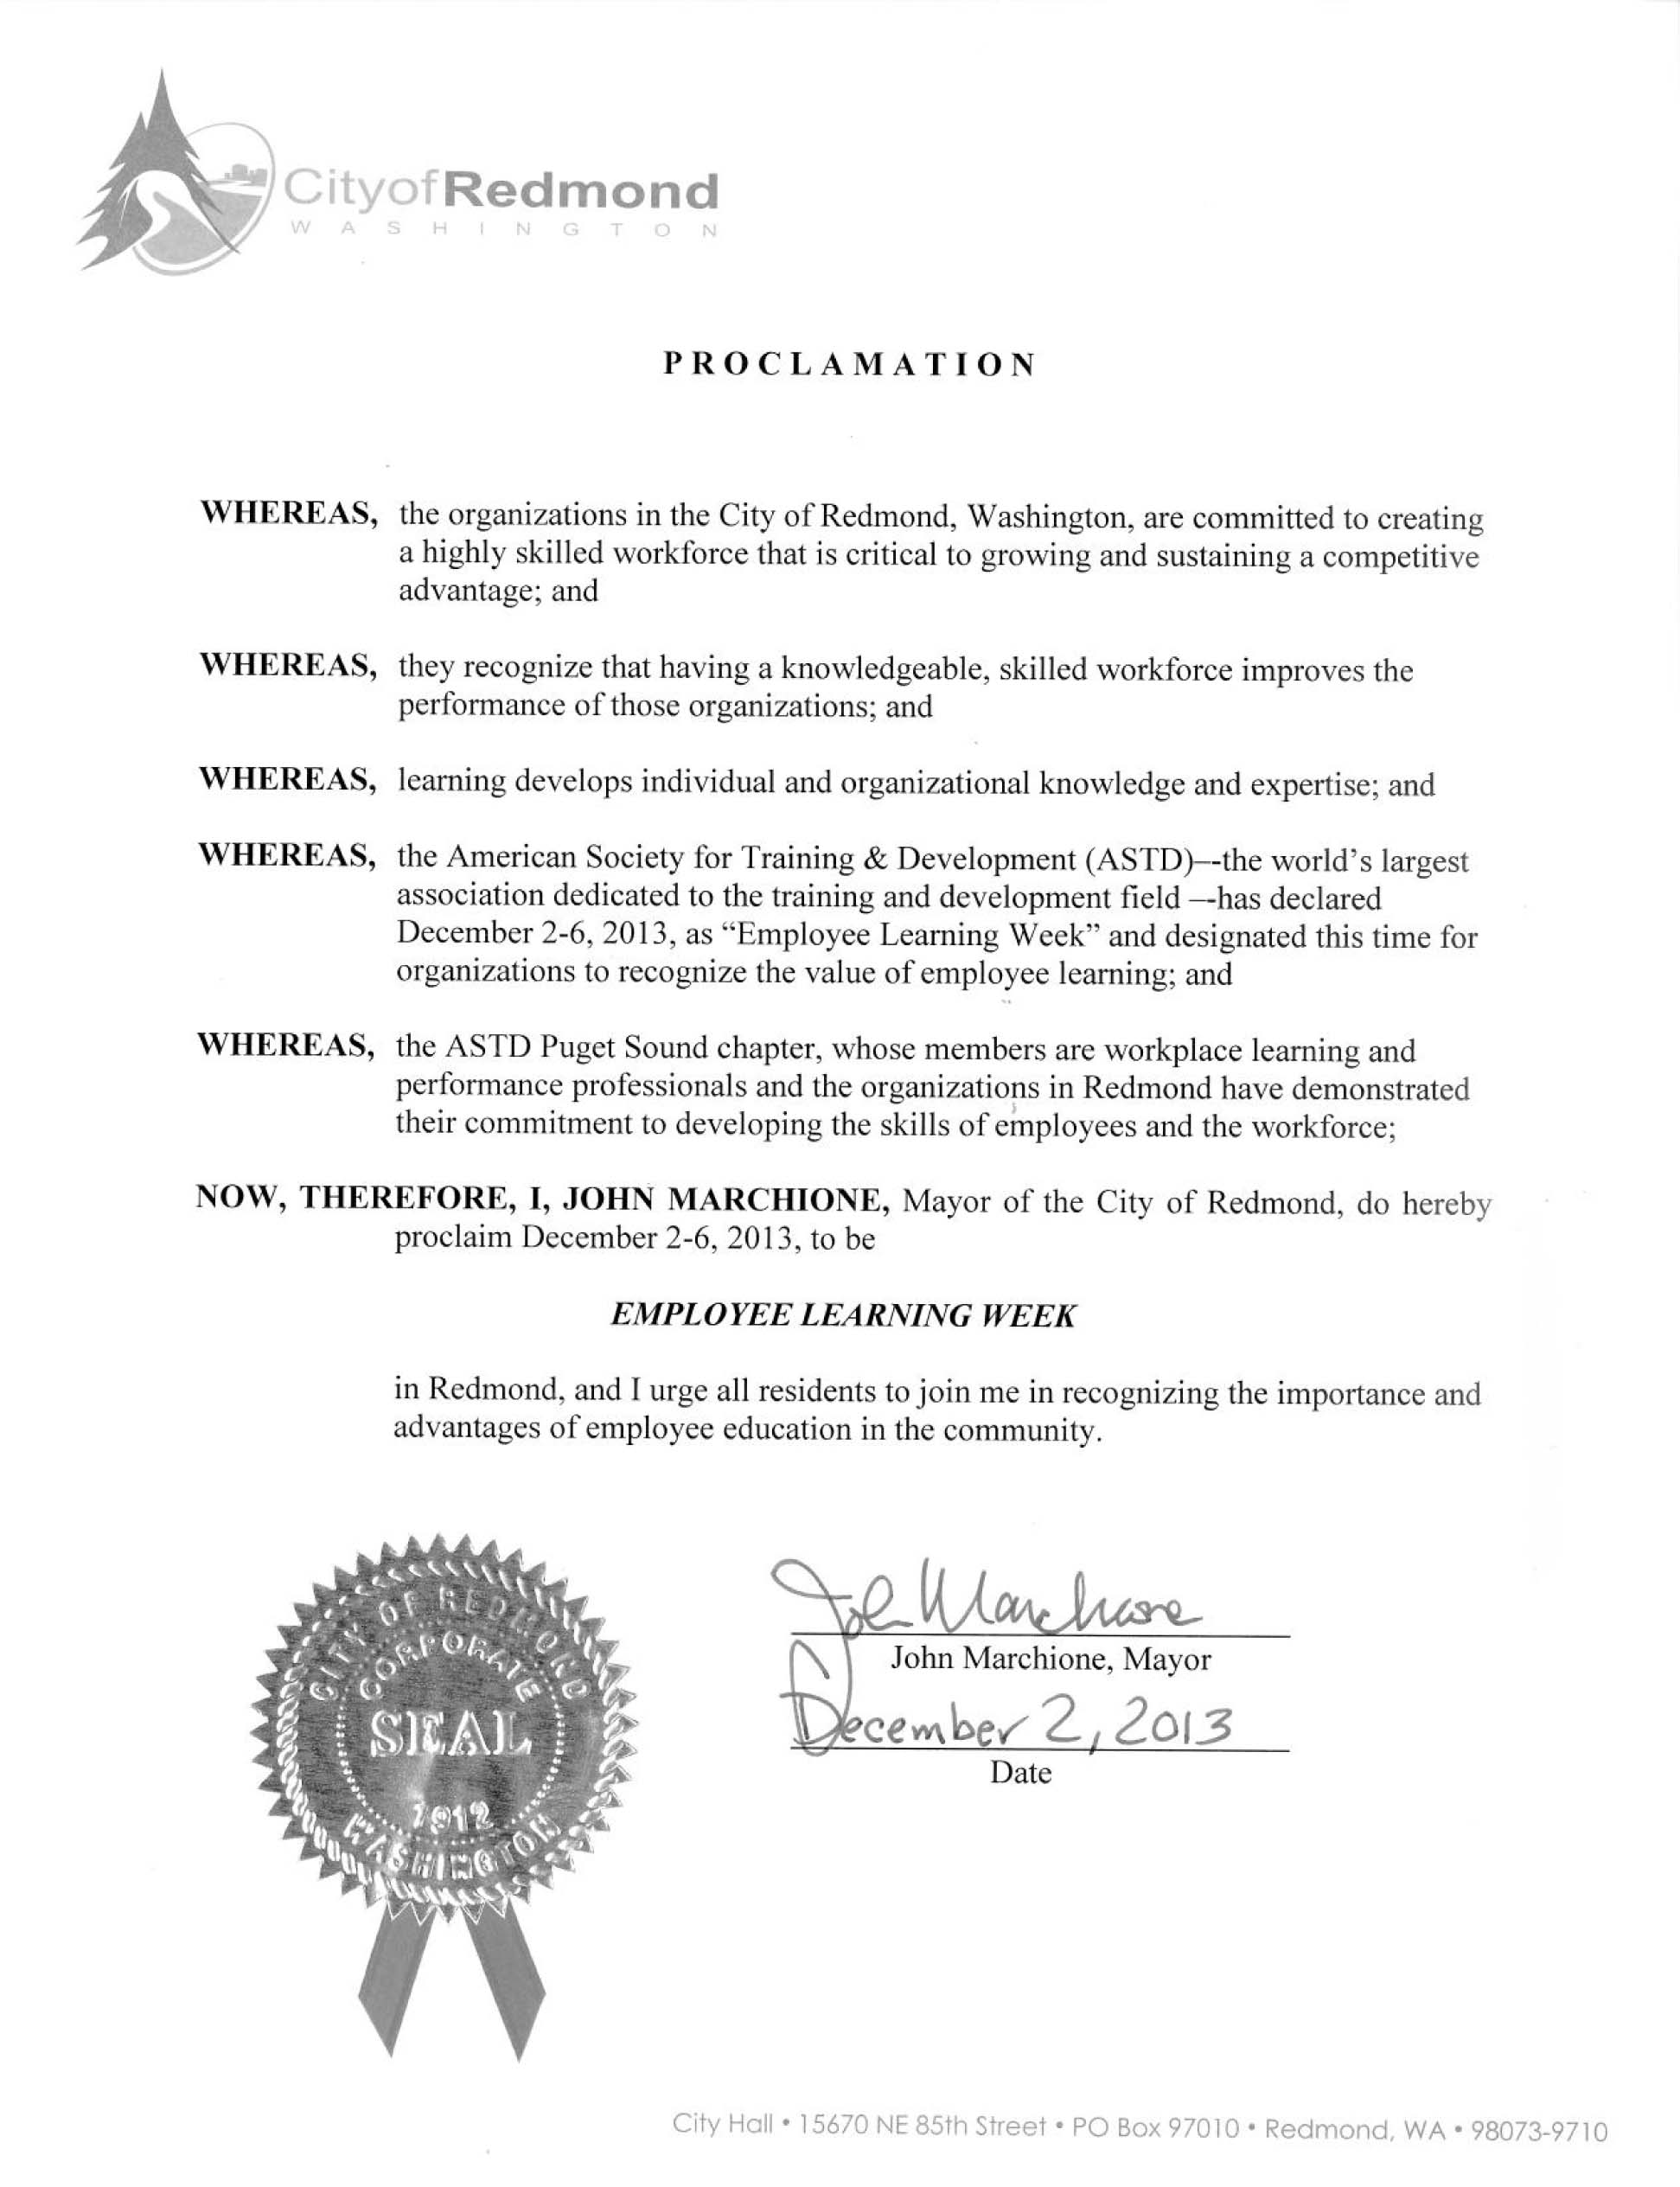 ATD Puget Sound Chapter - Proclamations